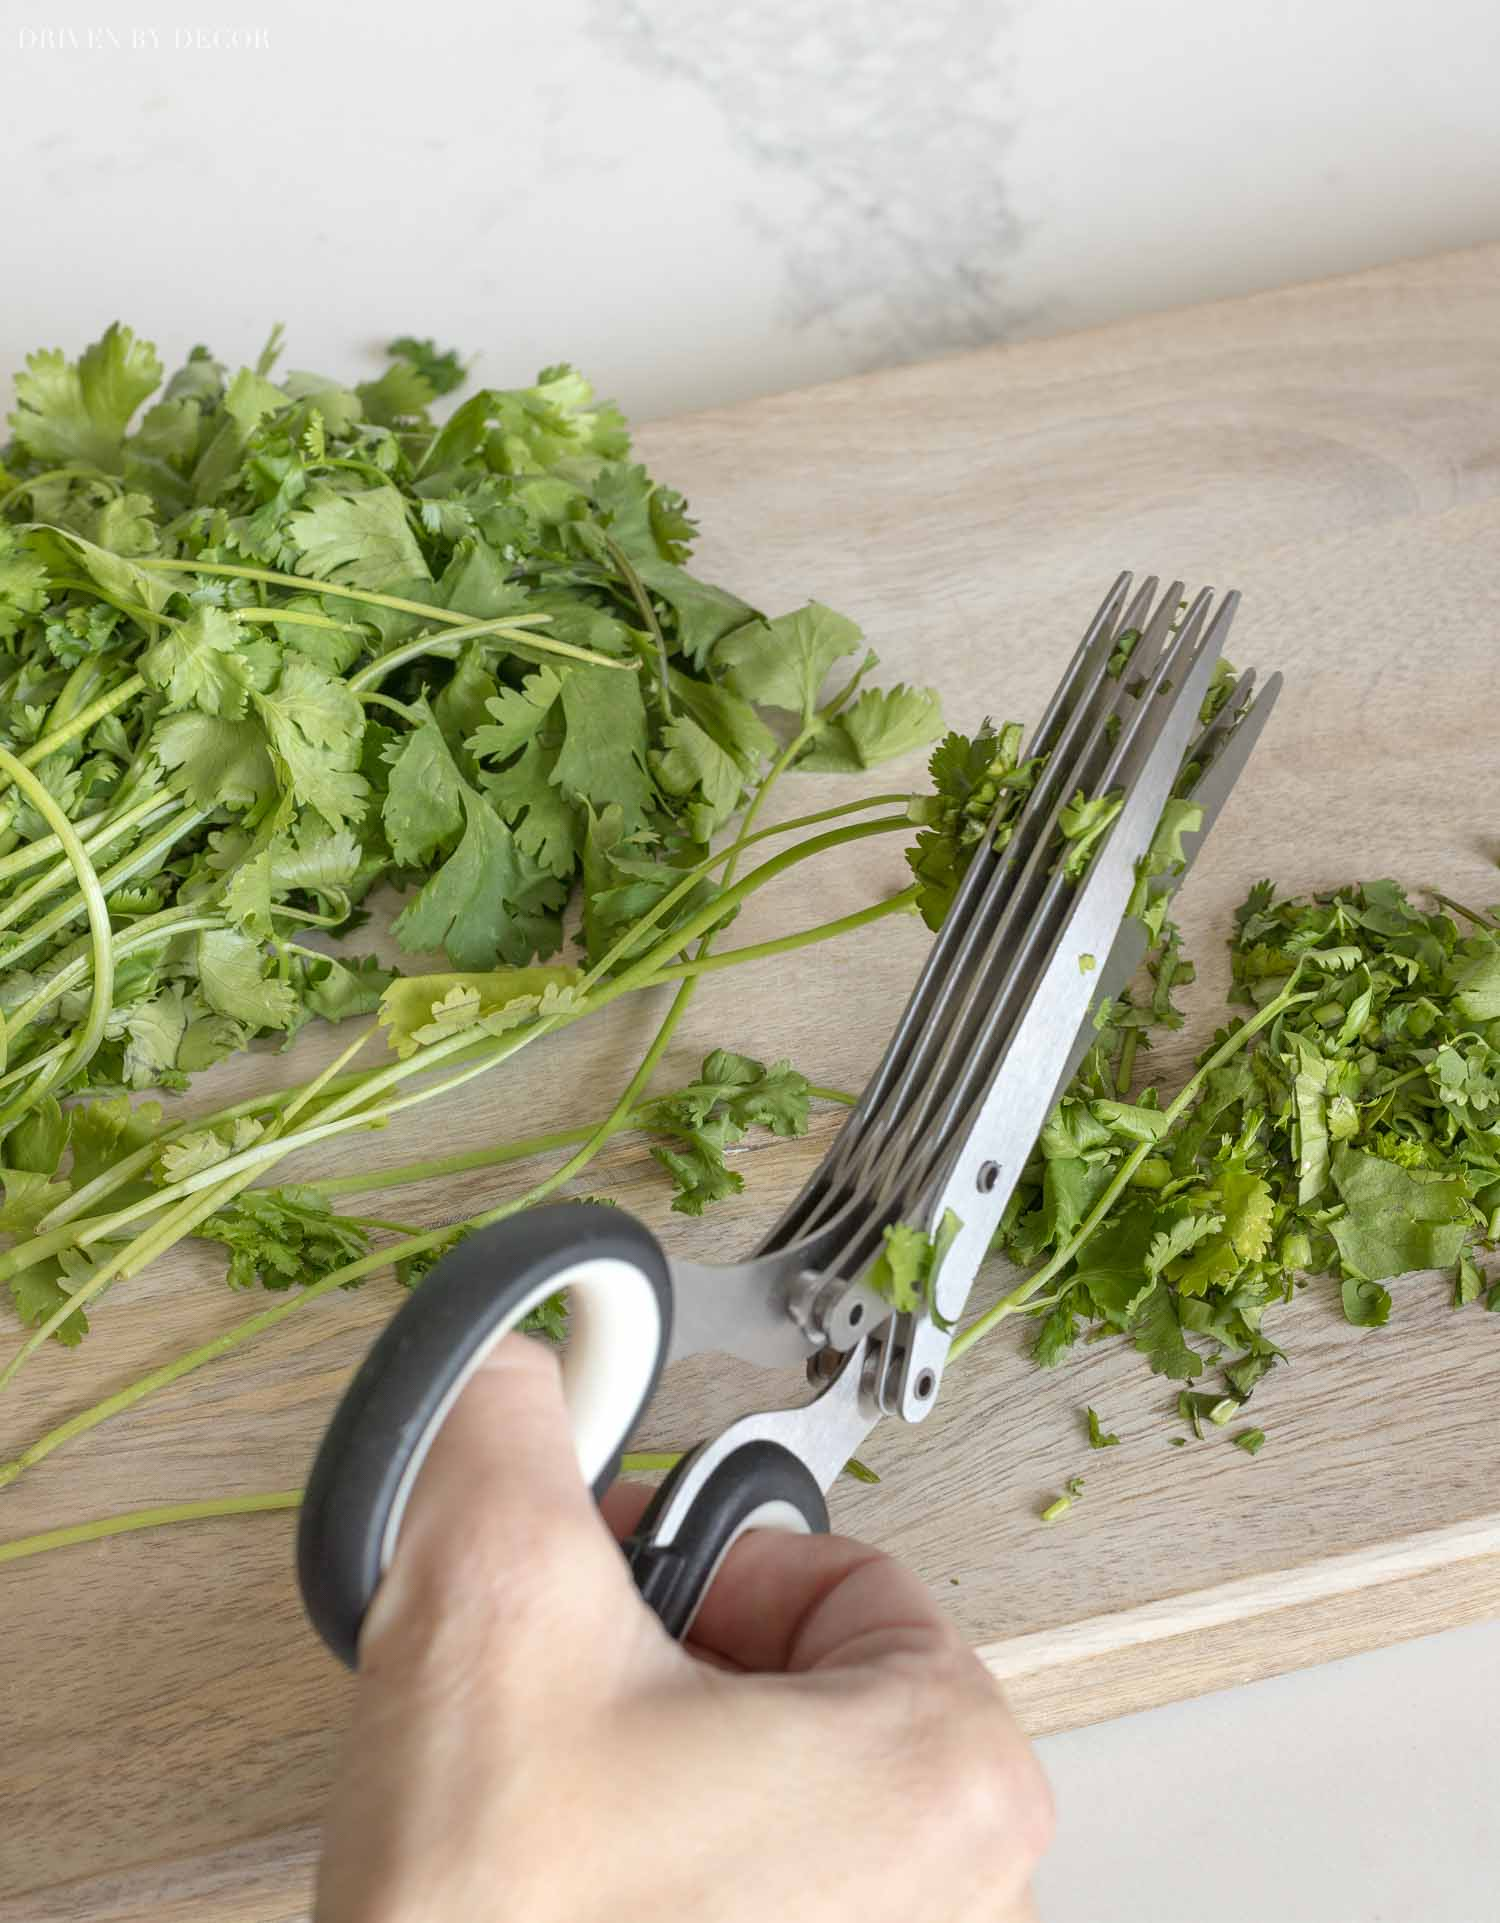 These herb scissors making chopping herbs quick and easy! An Amazon kitchen favorite!